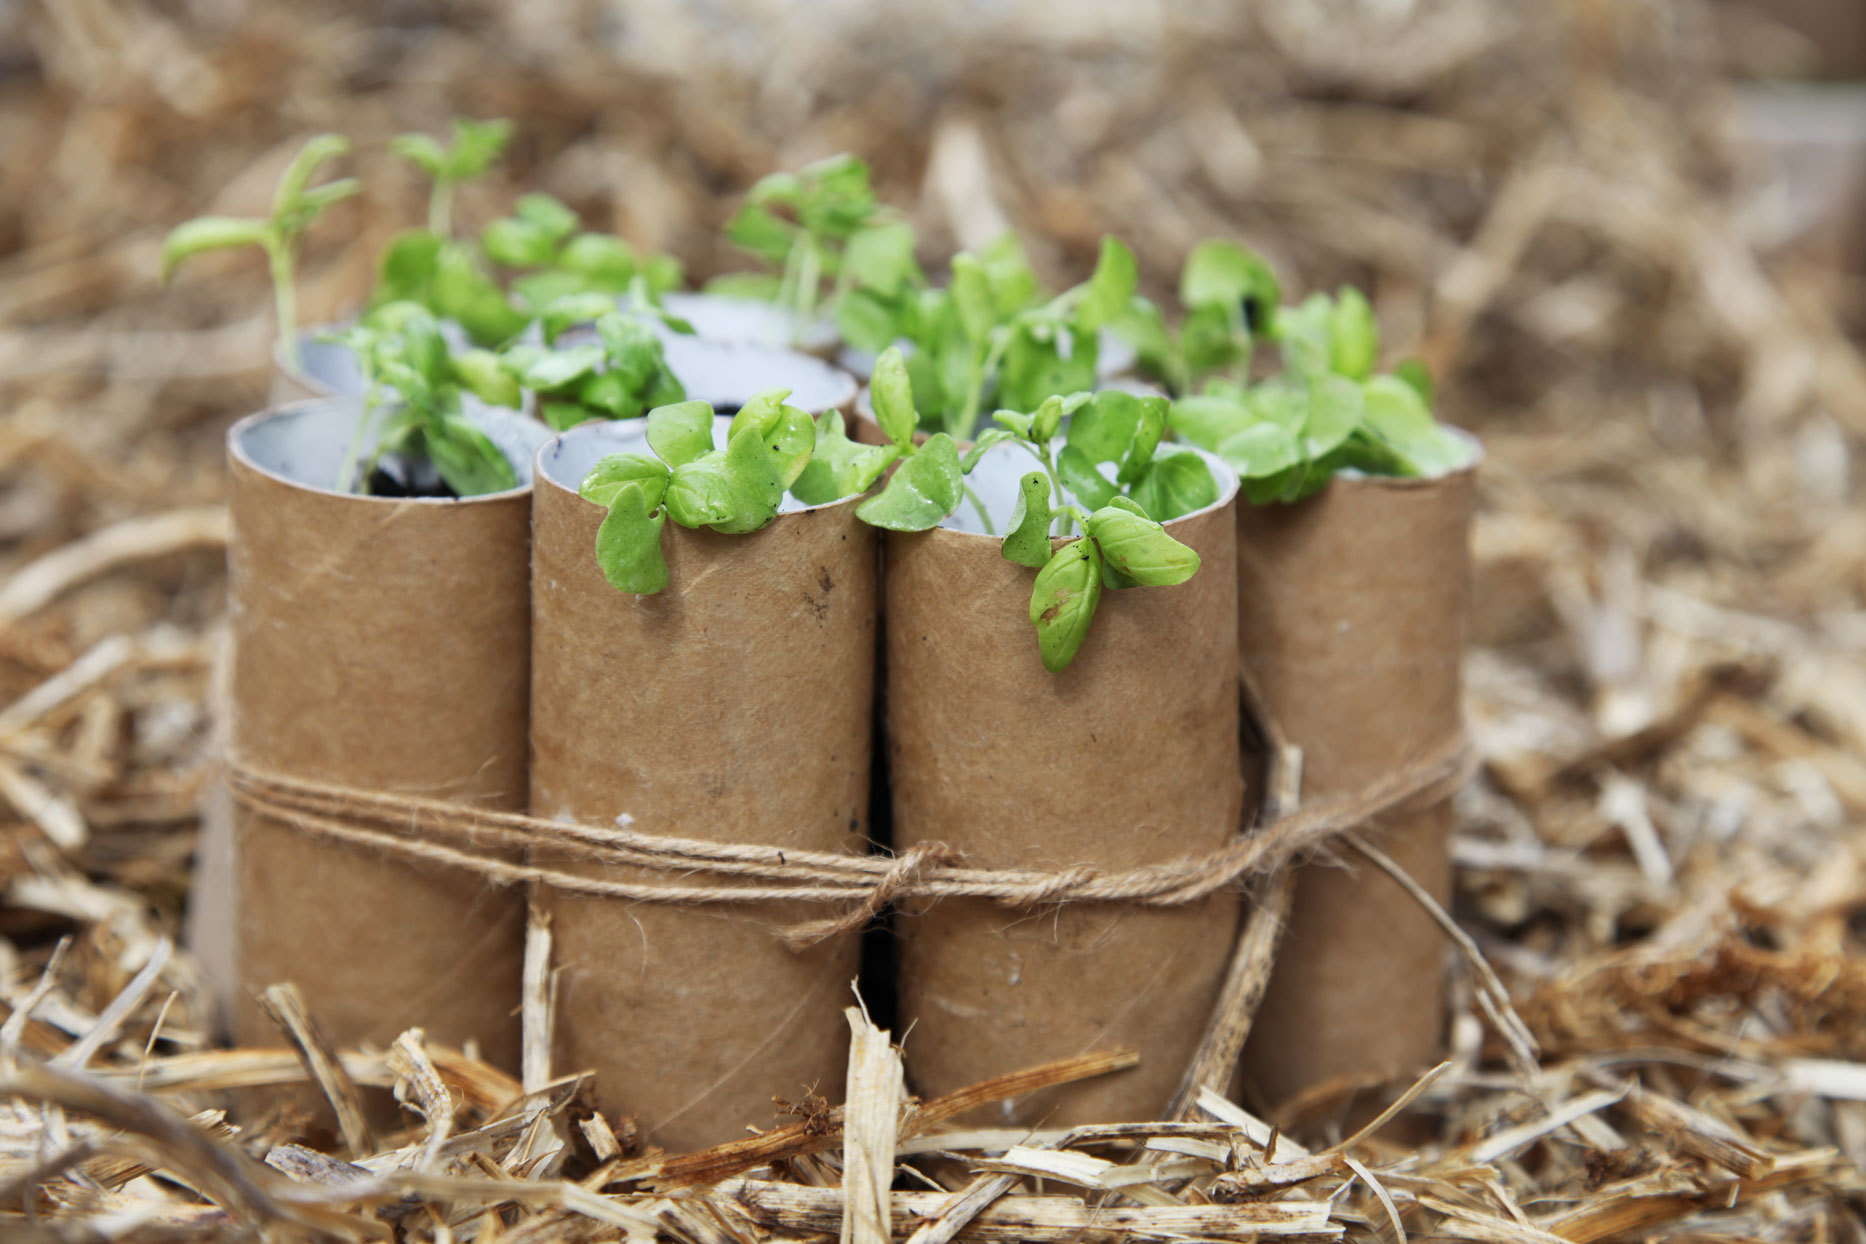 Cardboard toilet paper rolls bundled together used as seed starters